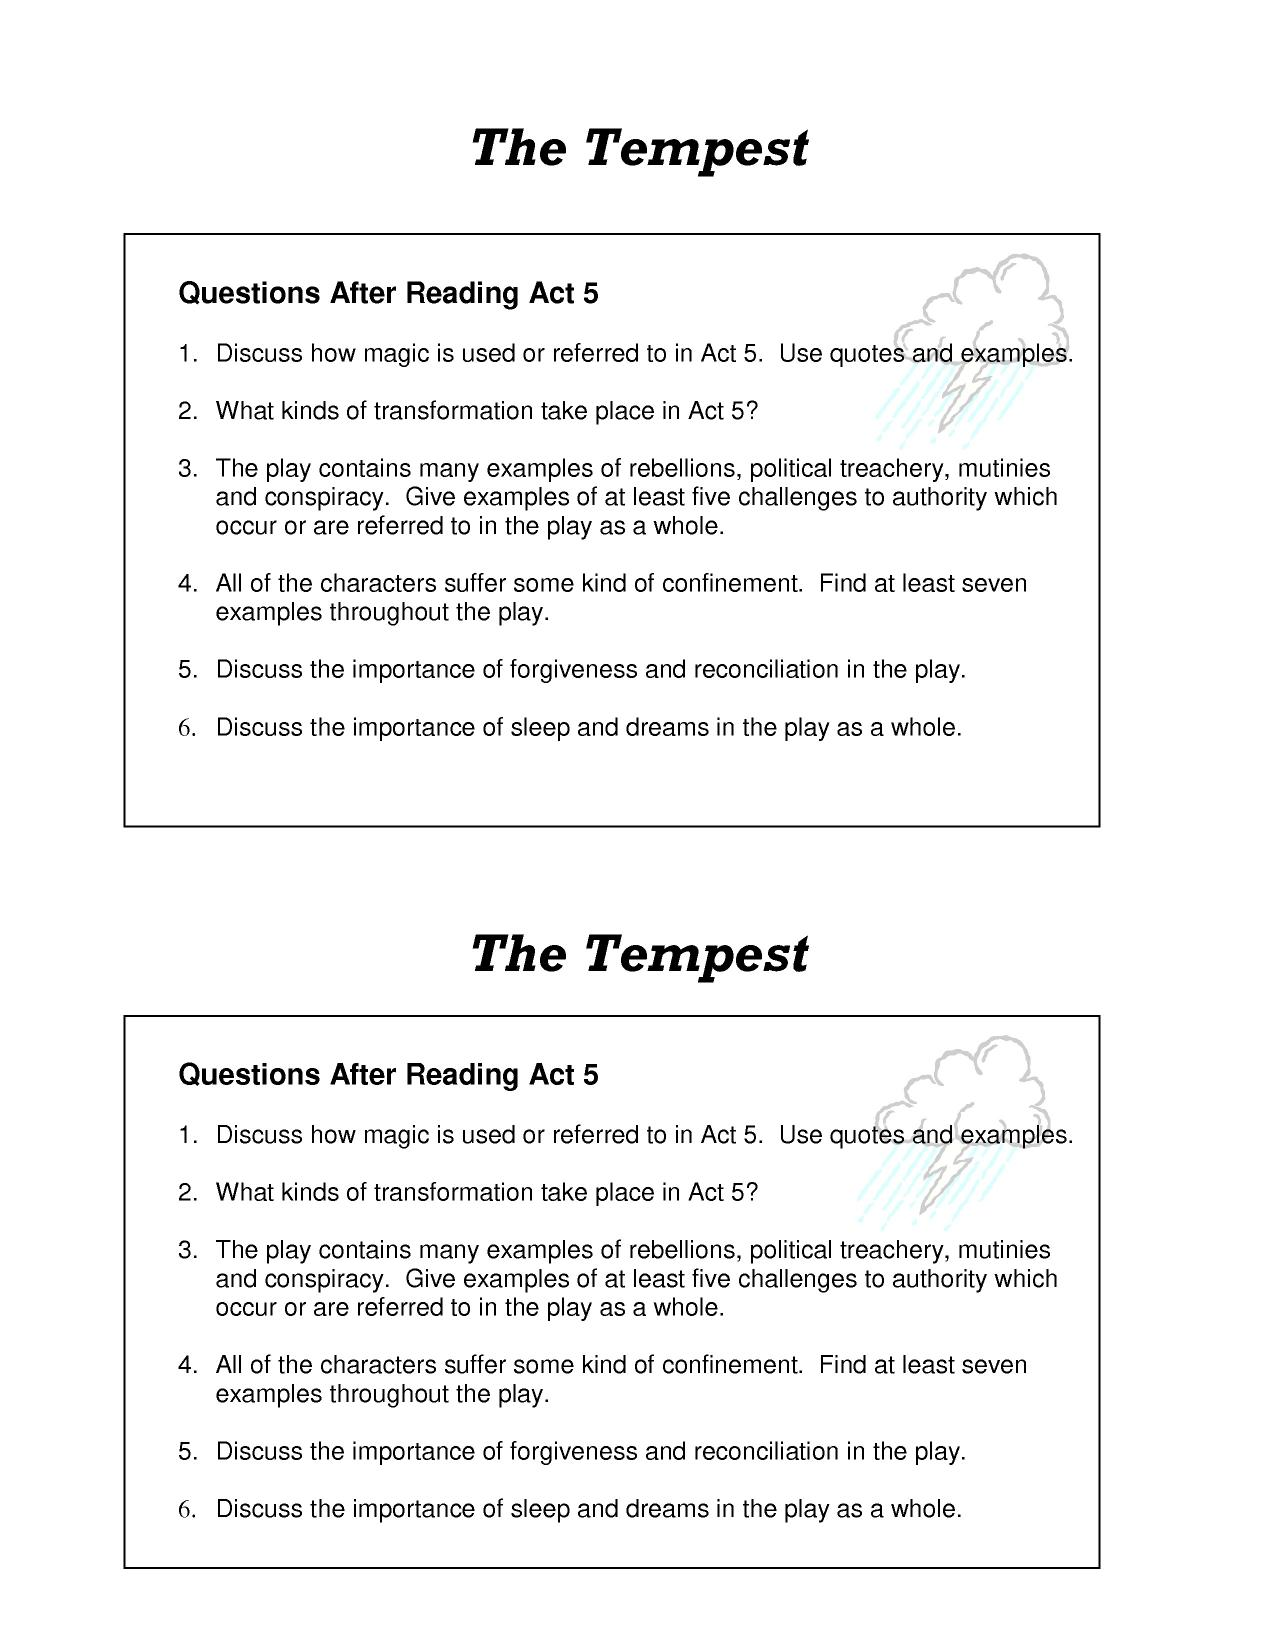 tempest discovery essay The tempest is shakespeare's last play, and is more complex than many of his earlier works in terms of structure and content if you are unsure about how you should study discovery, you should read this post on hsc area of study: discovery first.